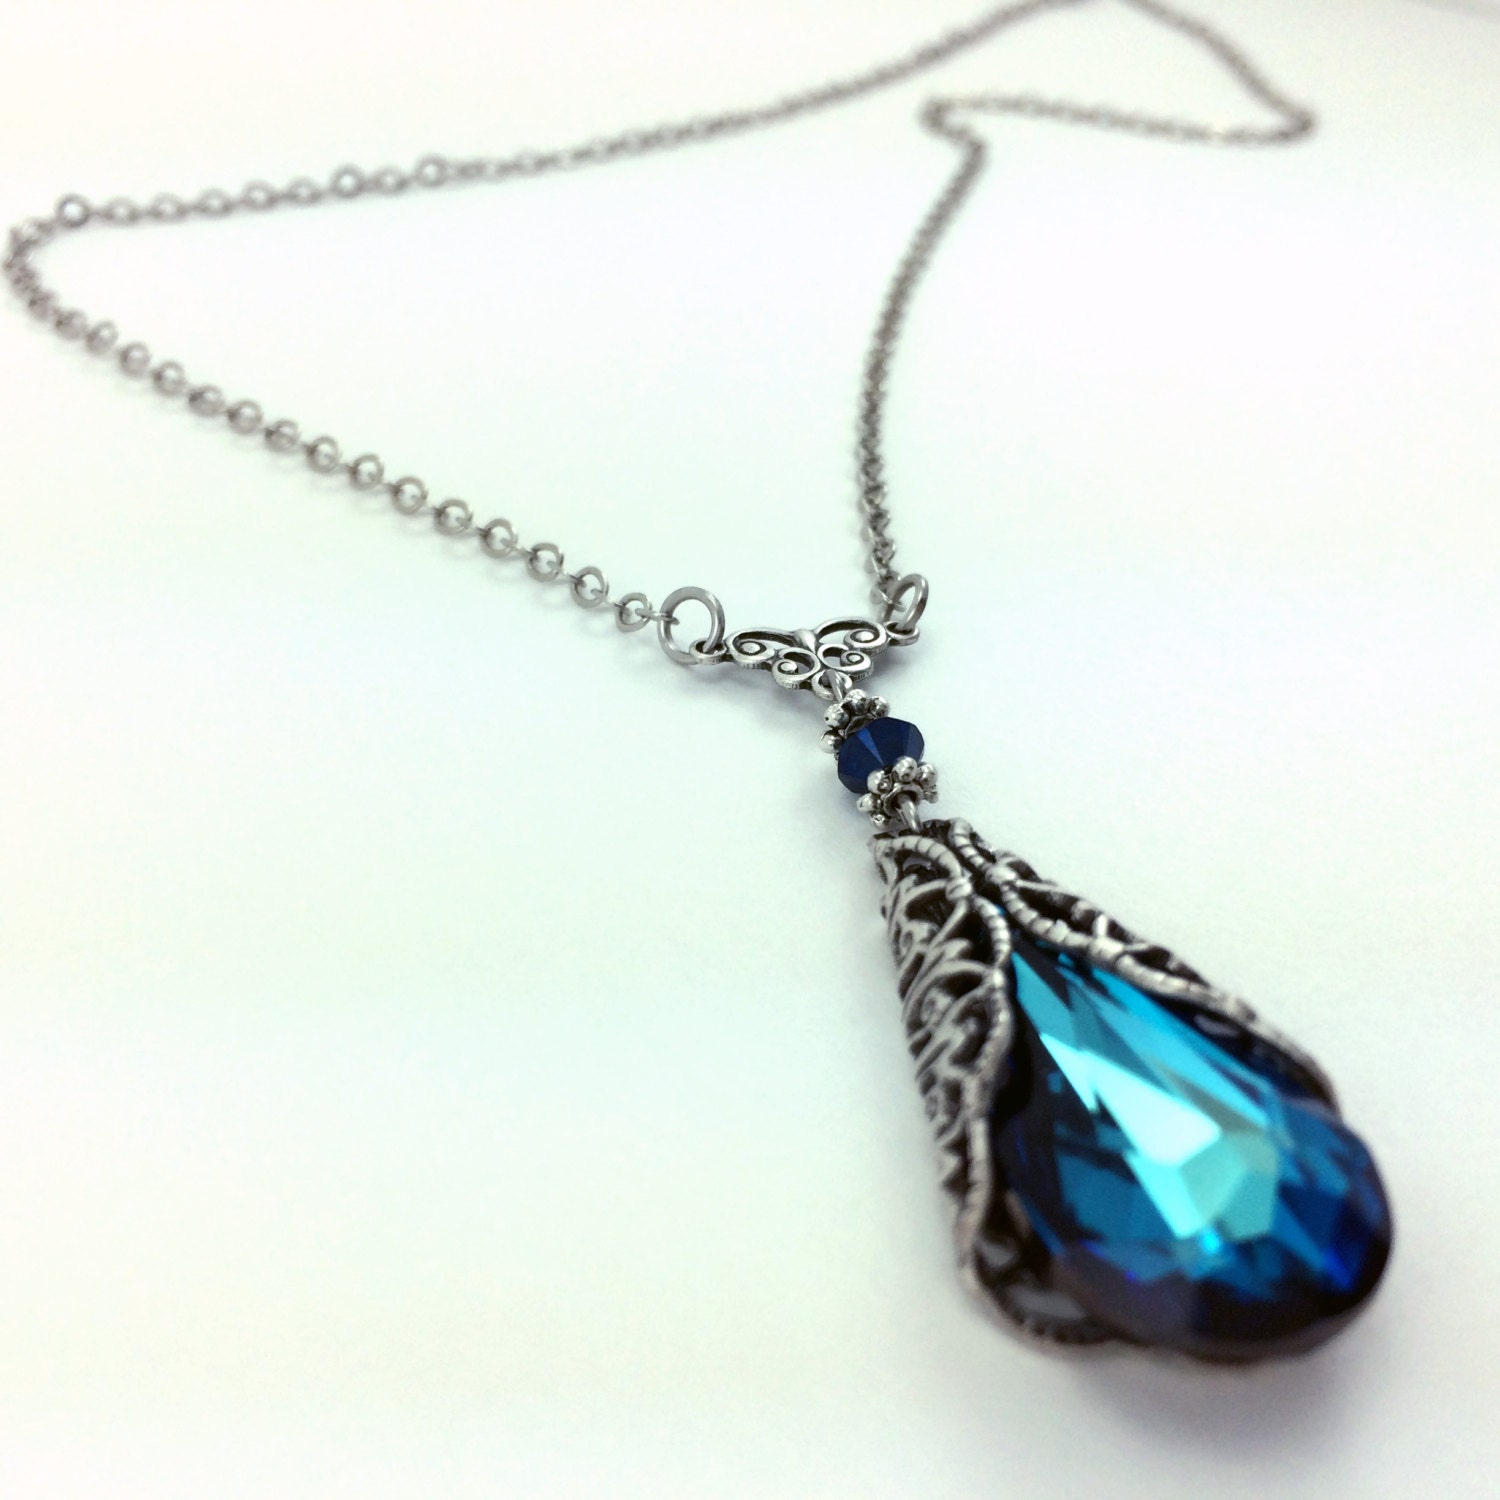 necklace pendants shop design sterling crystal real luxury water blue new for beautiful drop silver pendant fit